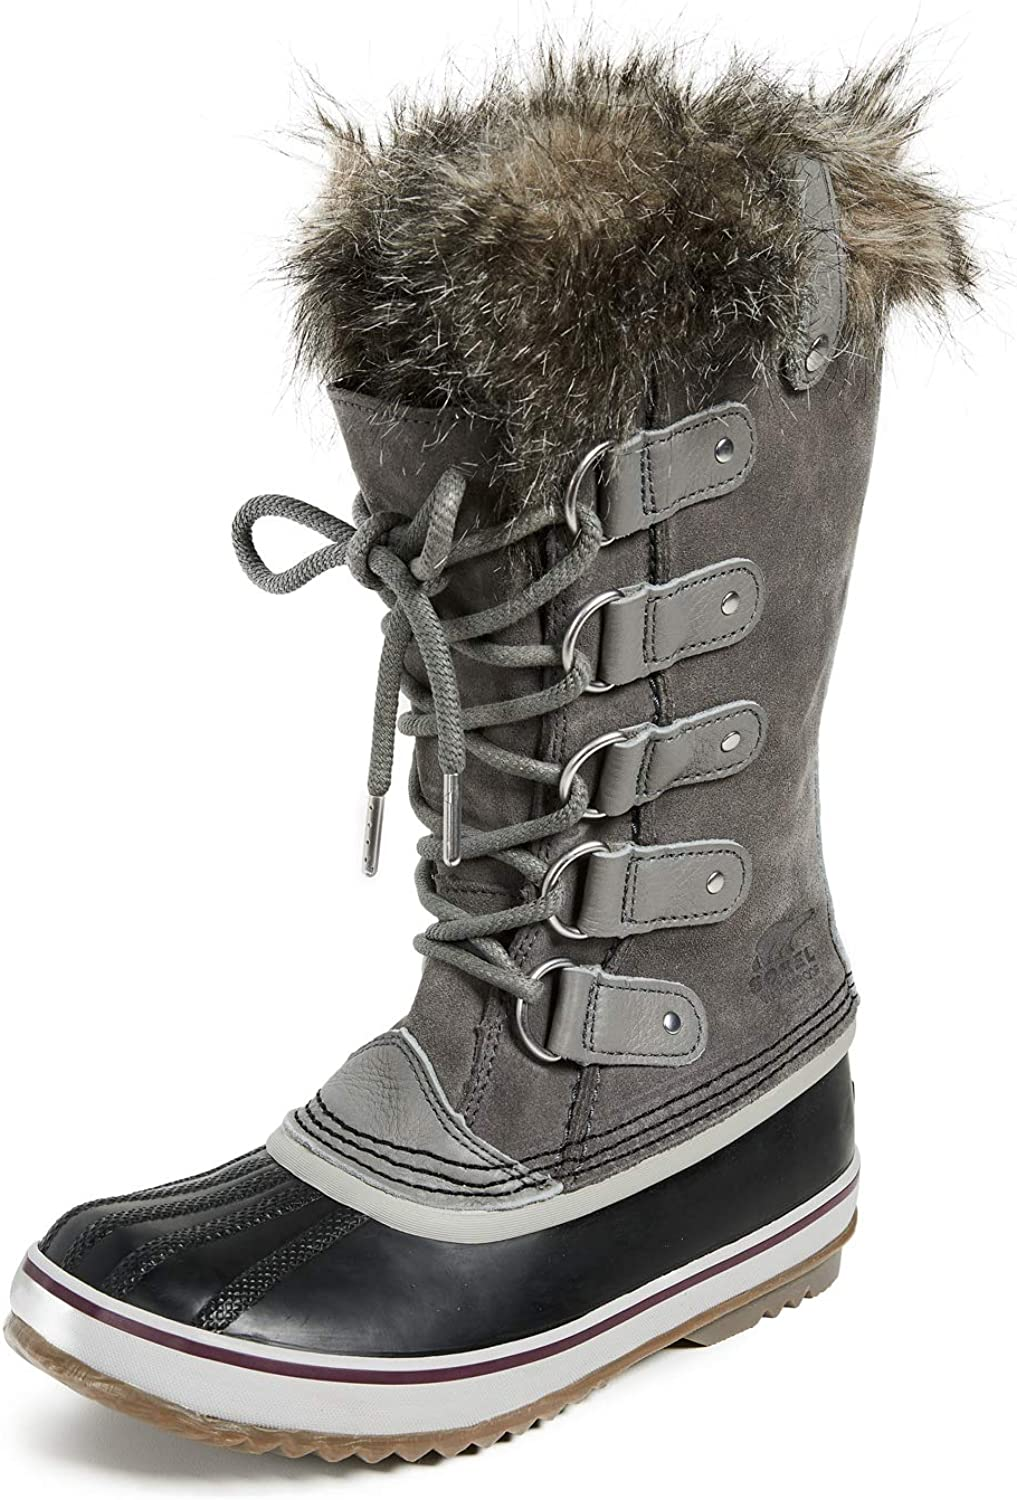 stores that sell sorel boots